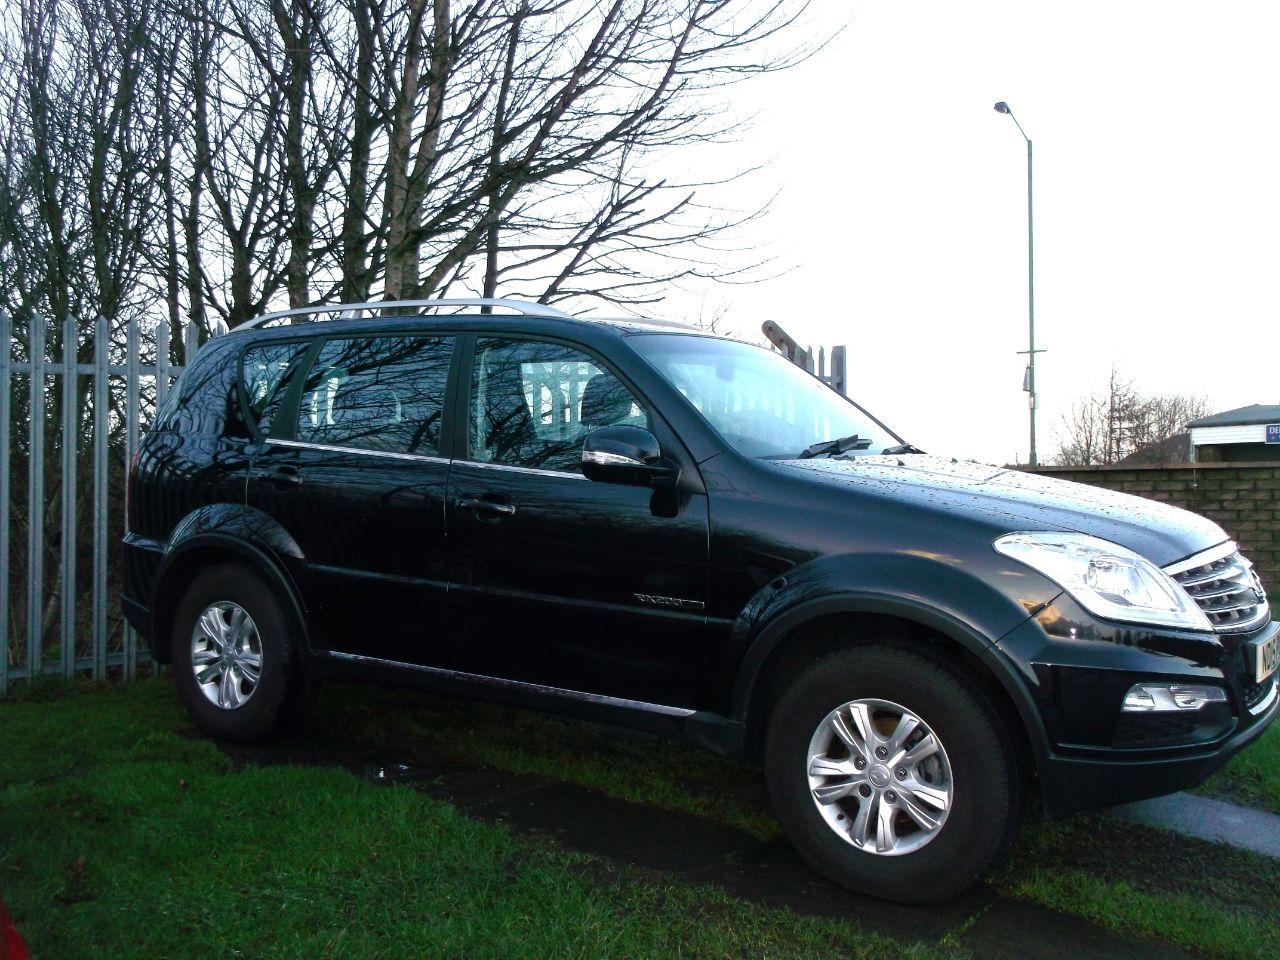 used ssangyong rexton w sx for sale in consett durham ssangyong gb. Black Bedroom Furniture Sets. Home Design Ideas